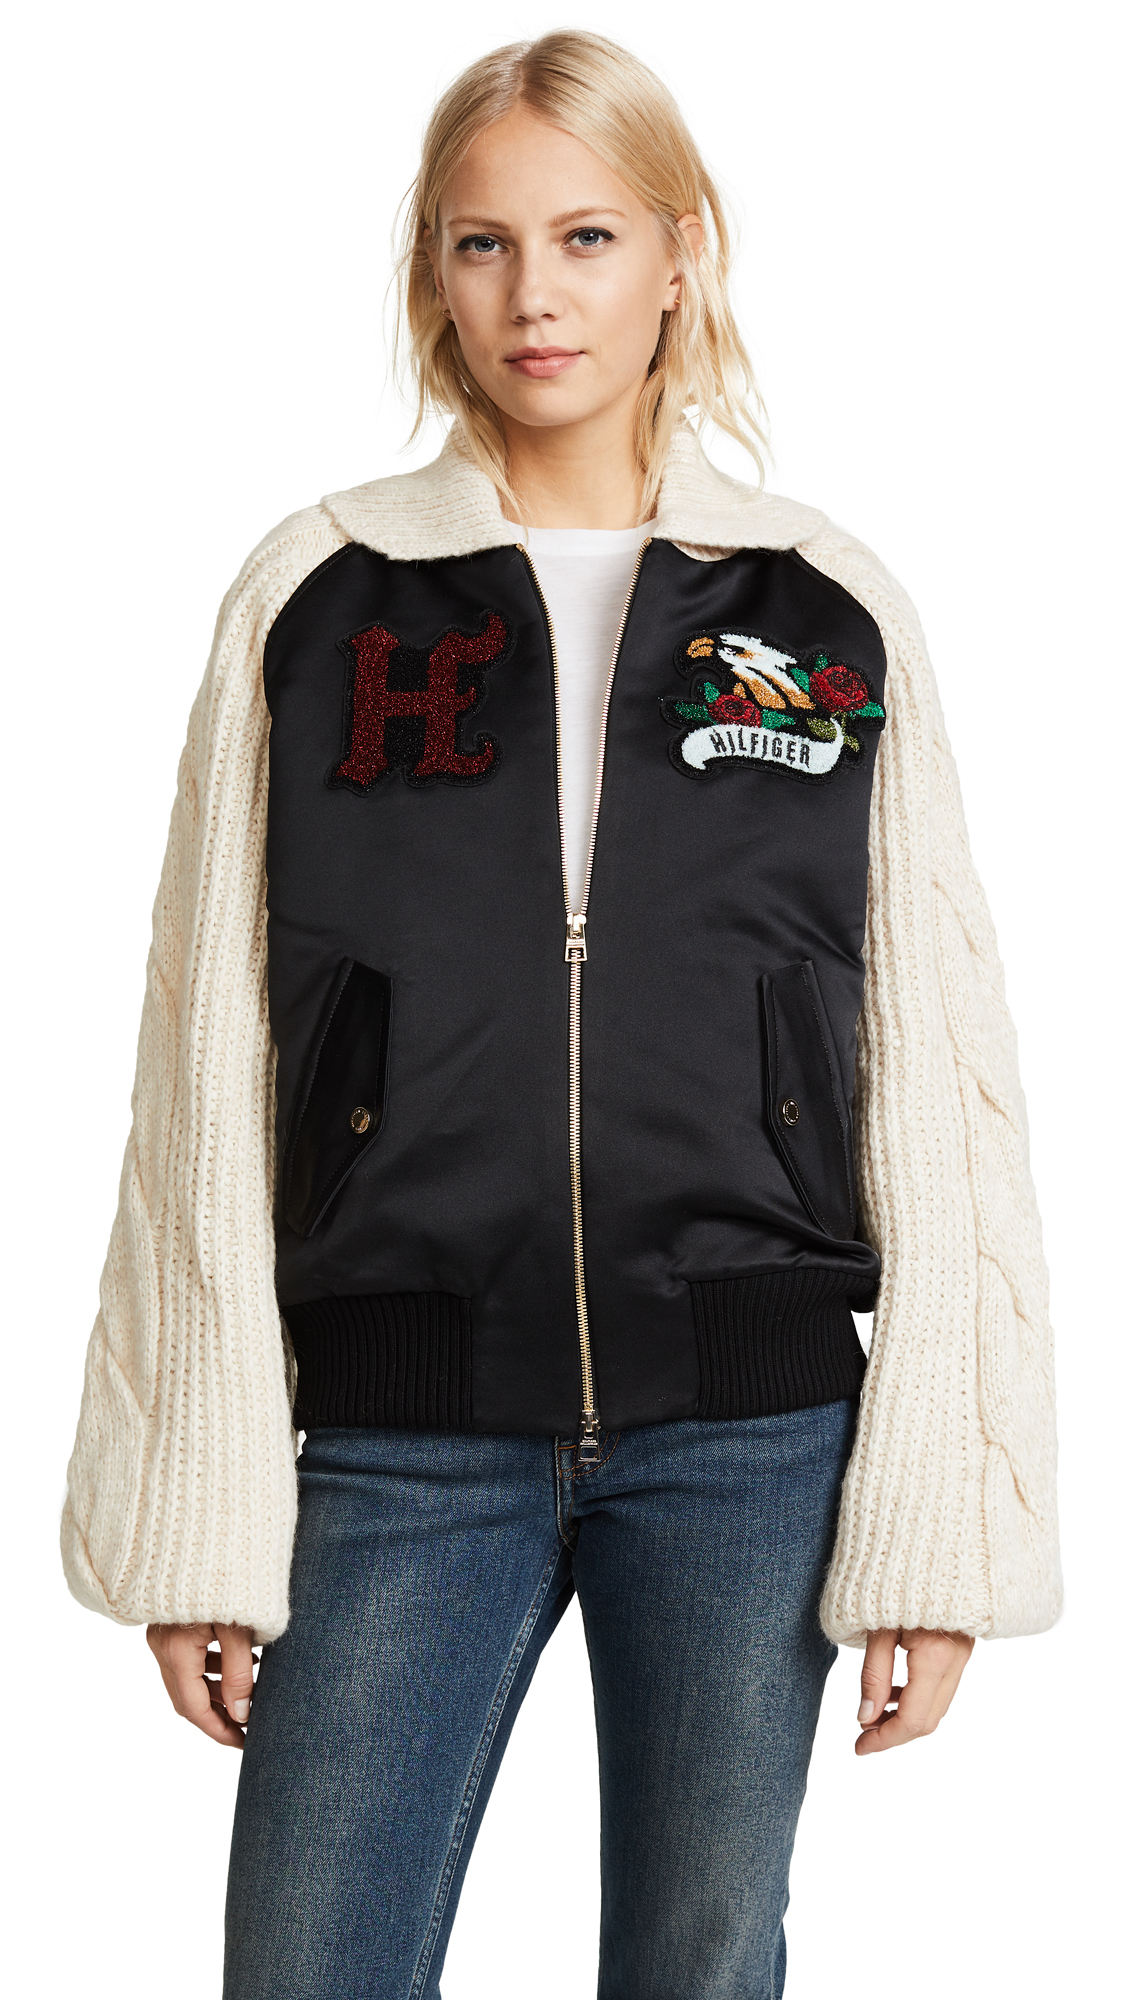 Hilfiger Collection Knitted Sleeve Bomber Jacket - Meteorite/Multi